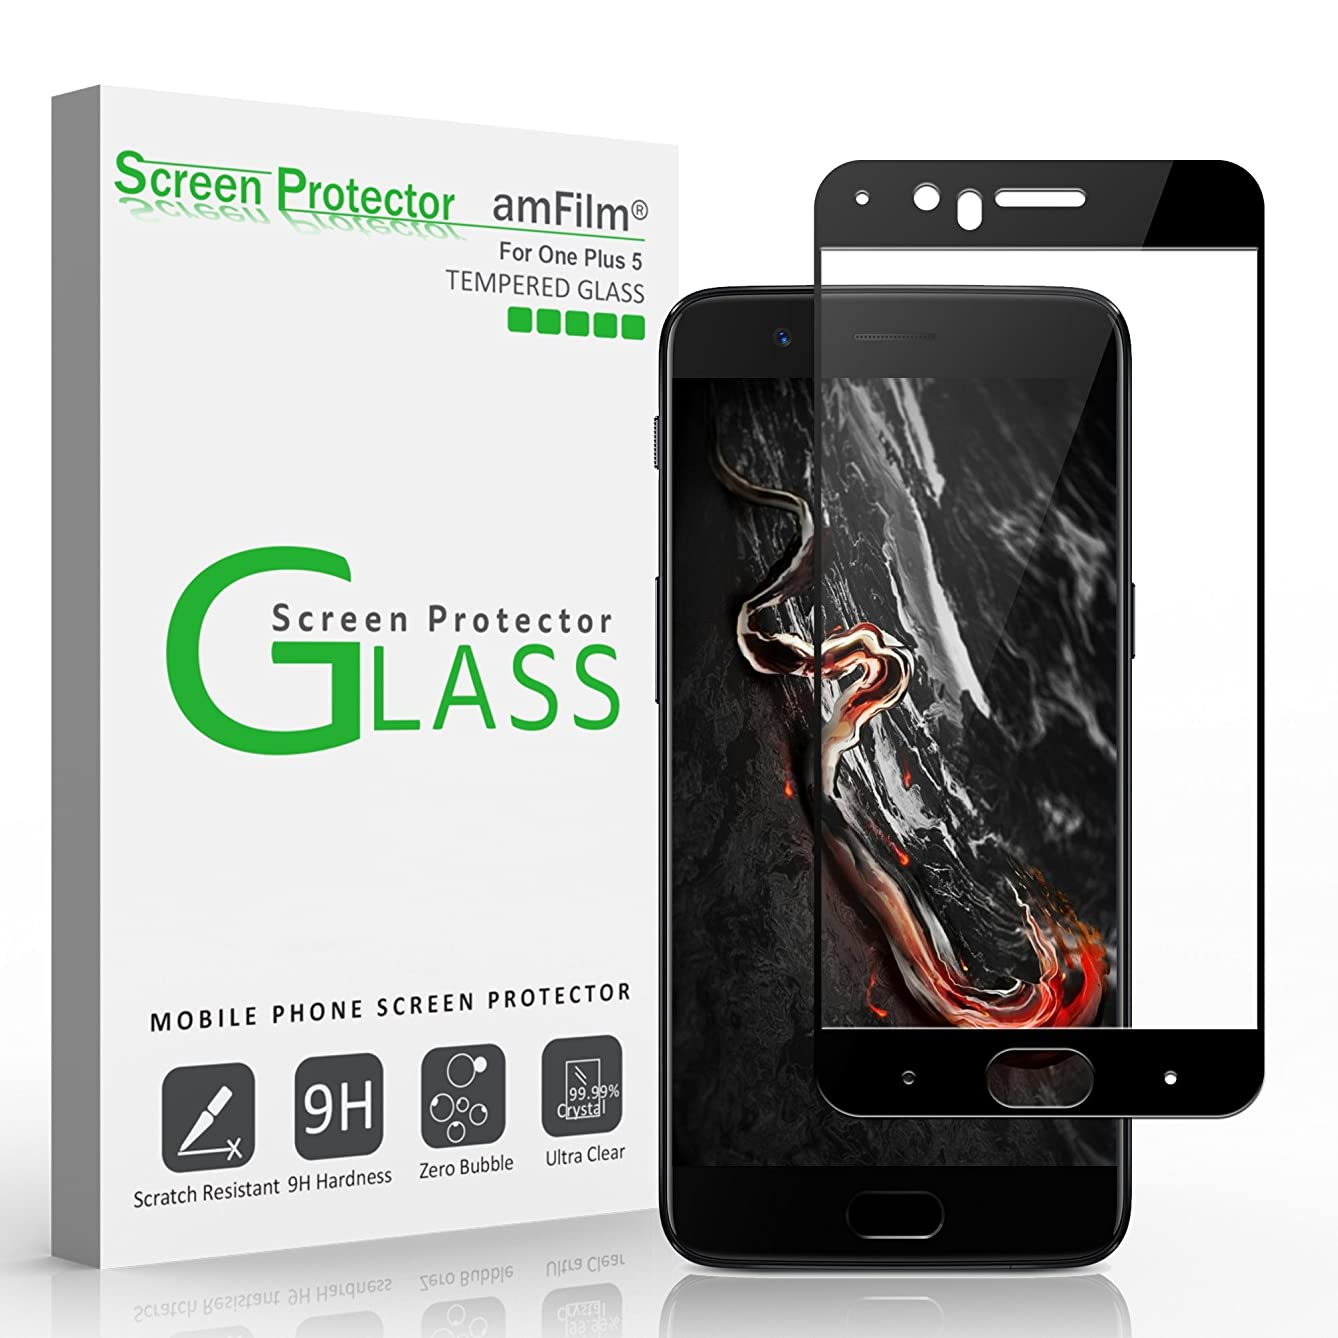 amFilm OnePlus 5 Screen Protector Glass (Case Friendly)(Updated Version), Bye-Bye-Bubble OnePlus Five Tempered Glass Screen Protector 2017